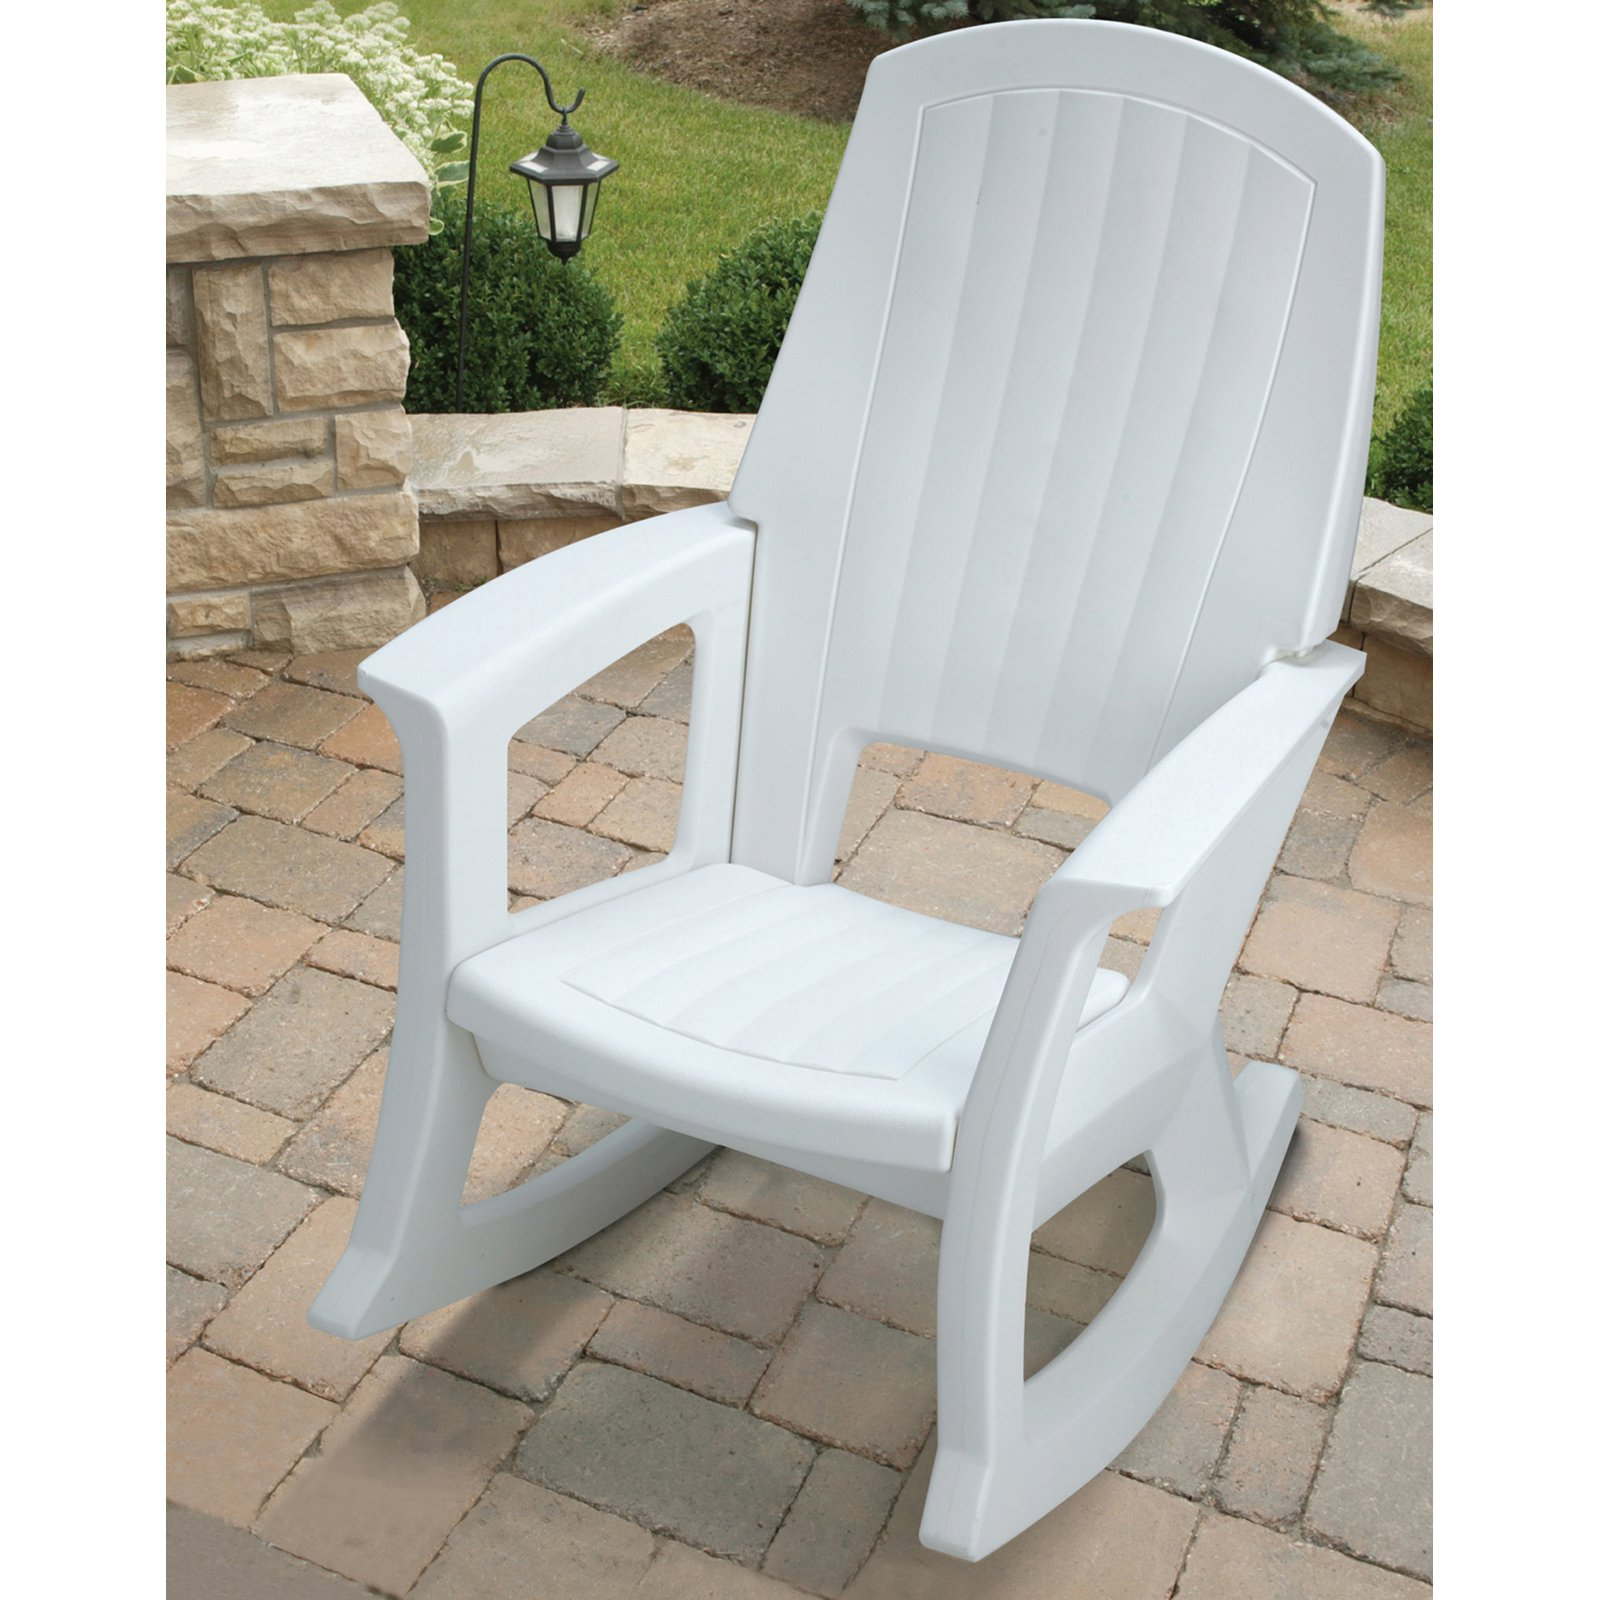 semco recycled plastic rocking chair walmartcom - Patio Rocking Chairs